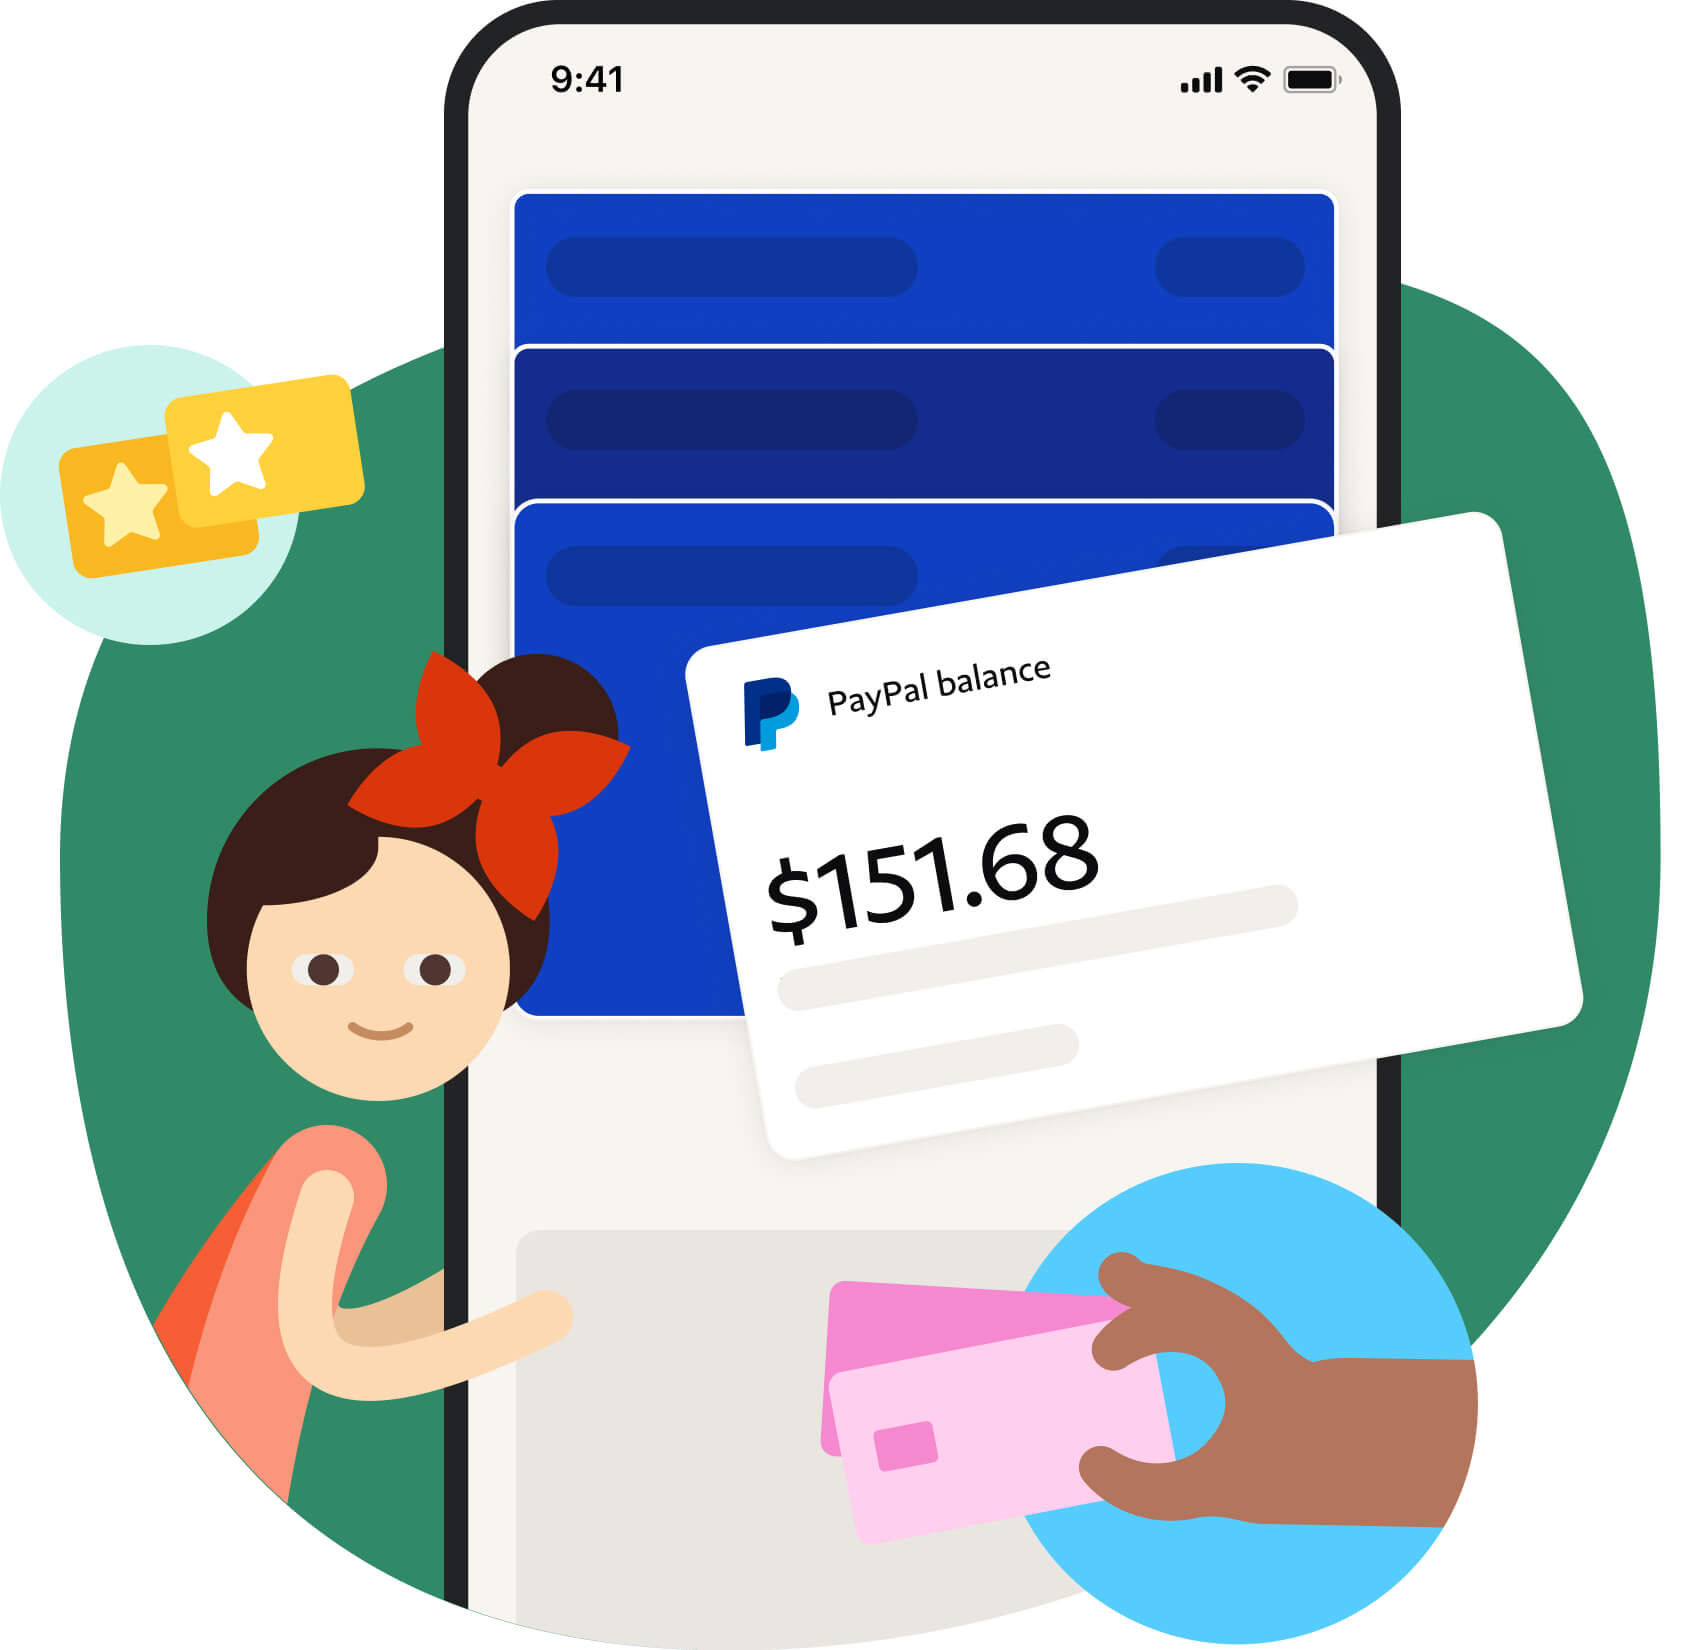 Person beside paypal payment image on phone